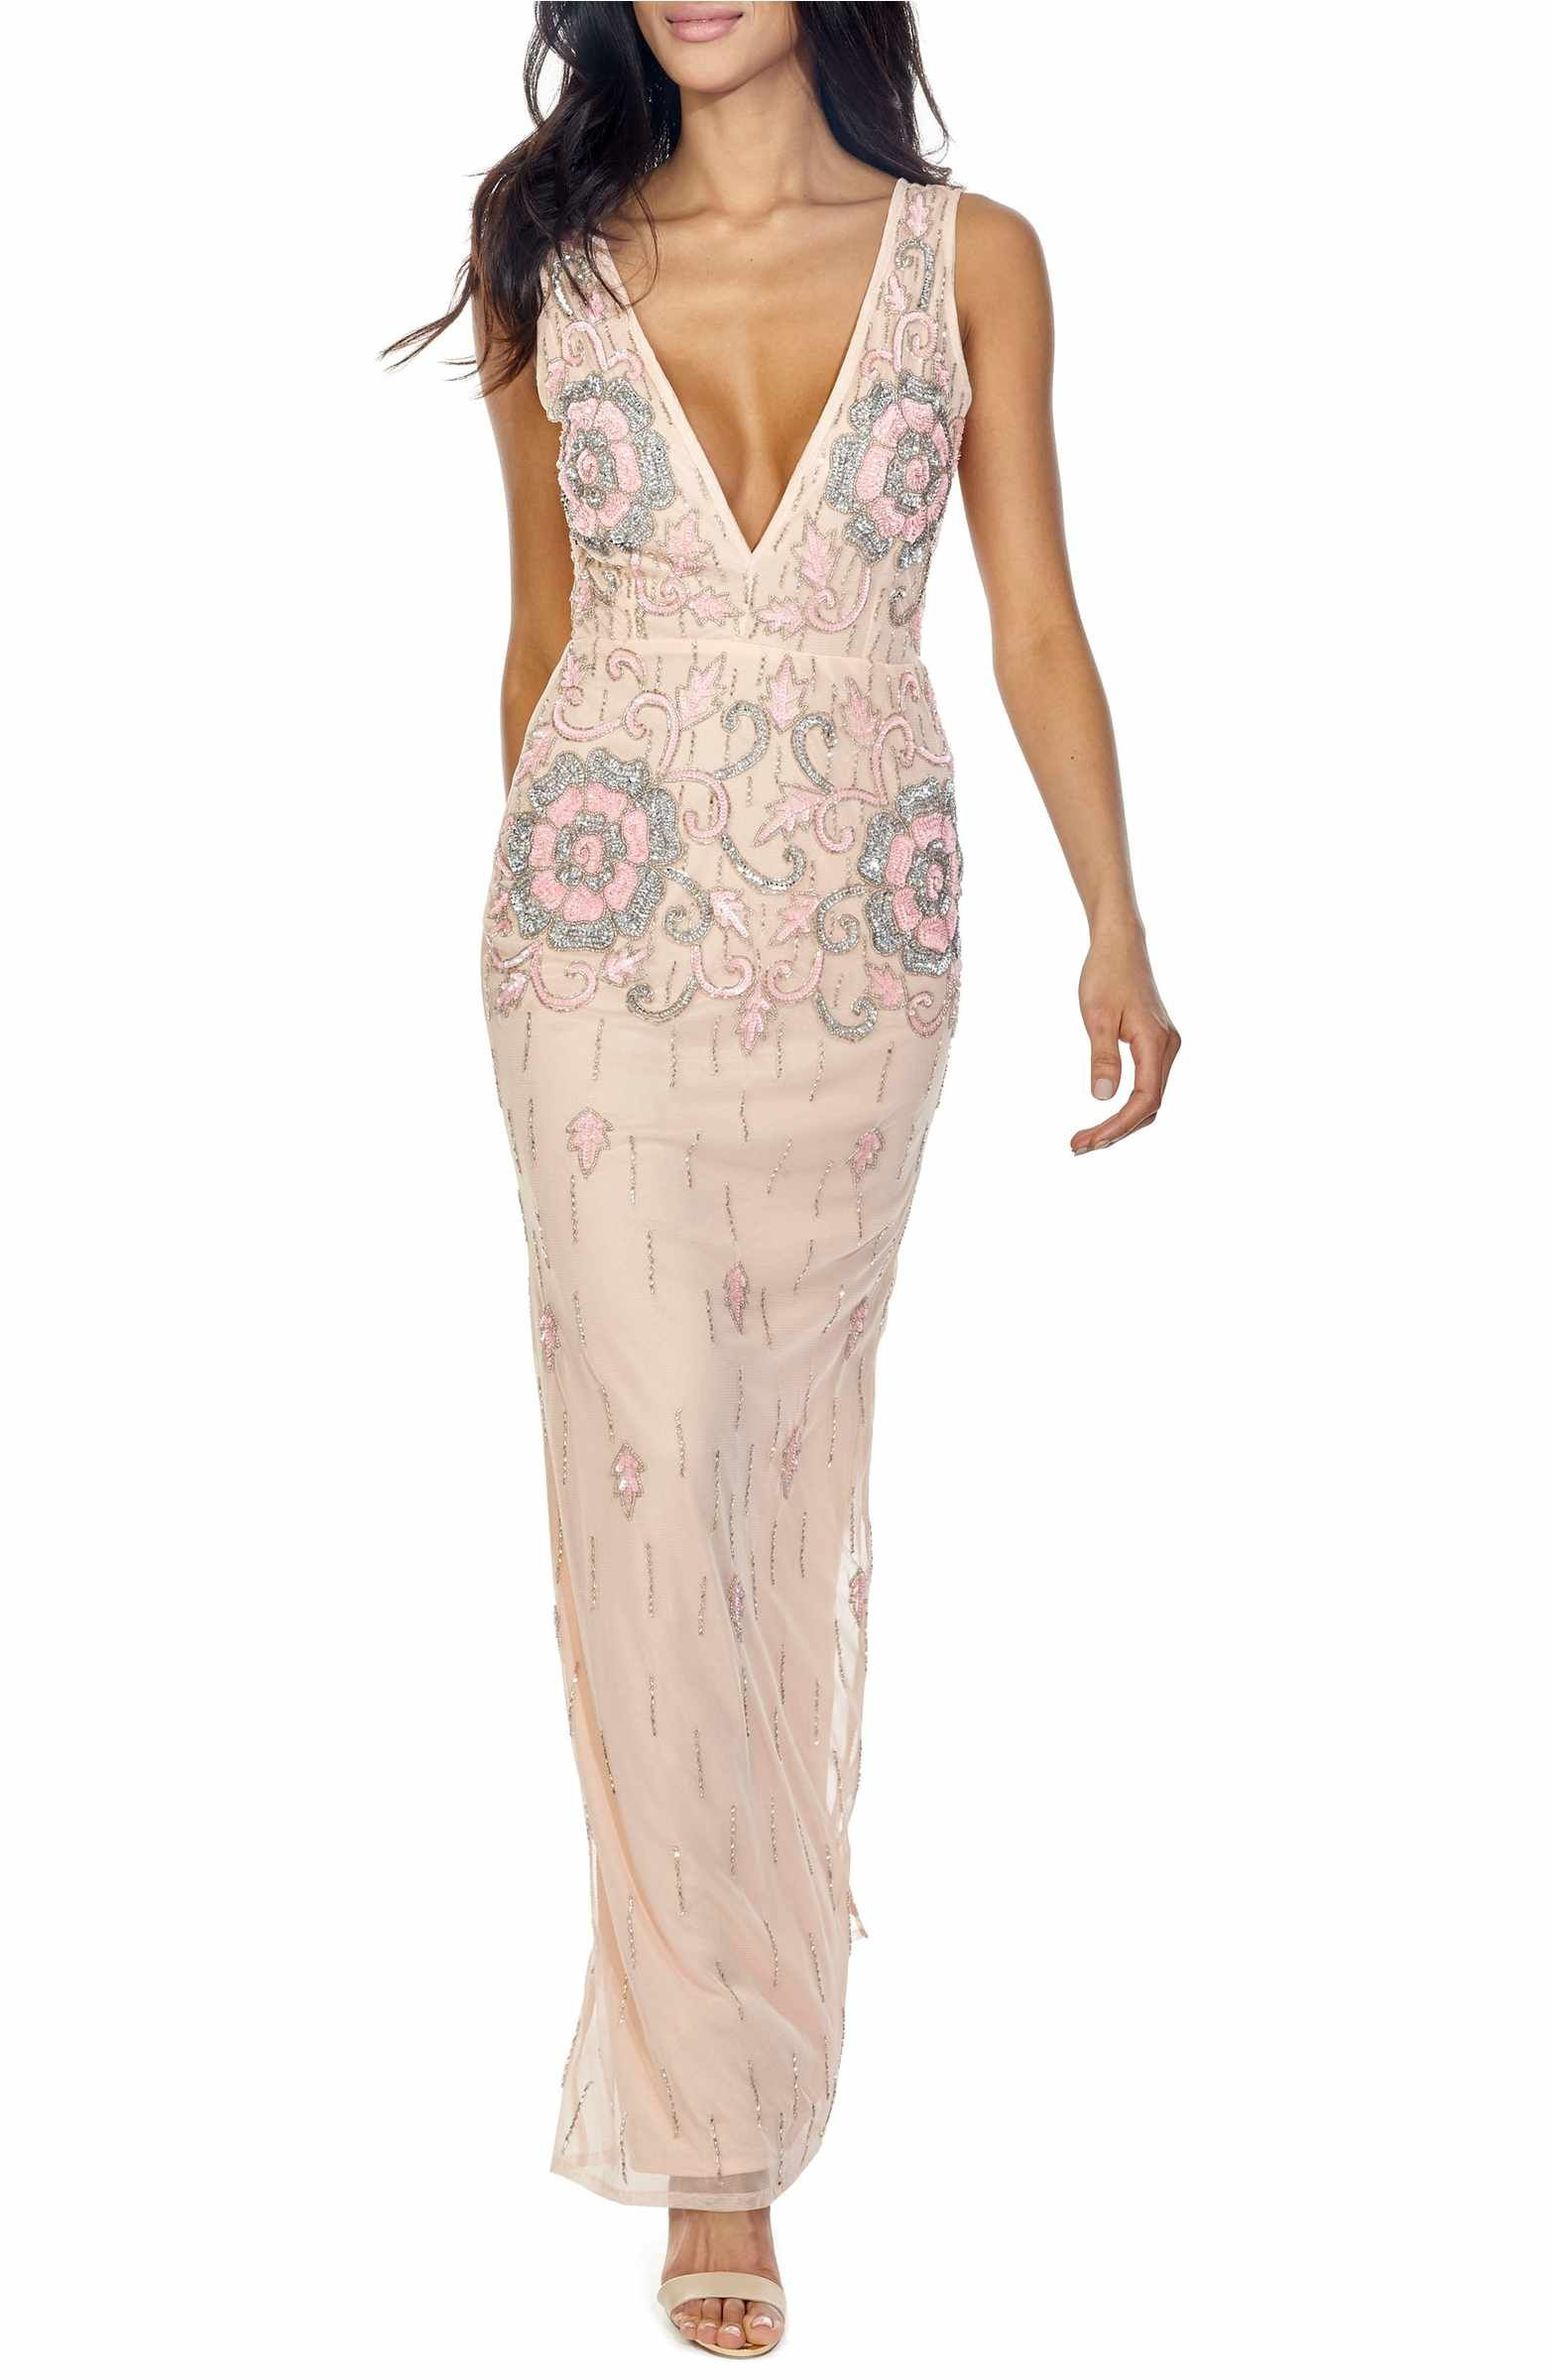 Main image lace u beads gilly sequin maxi dress long dresses